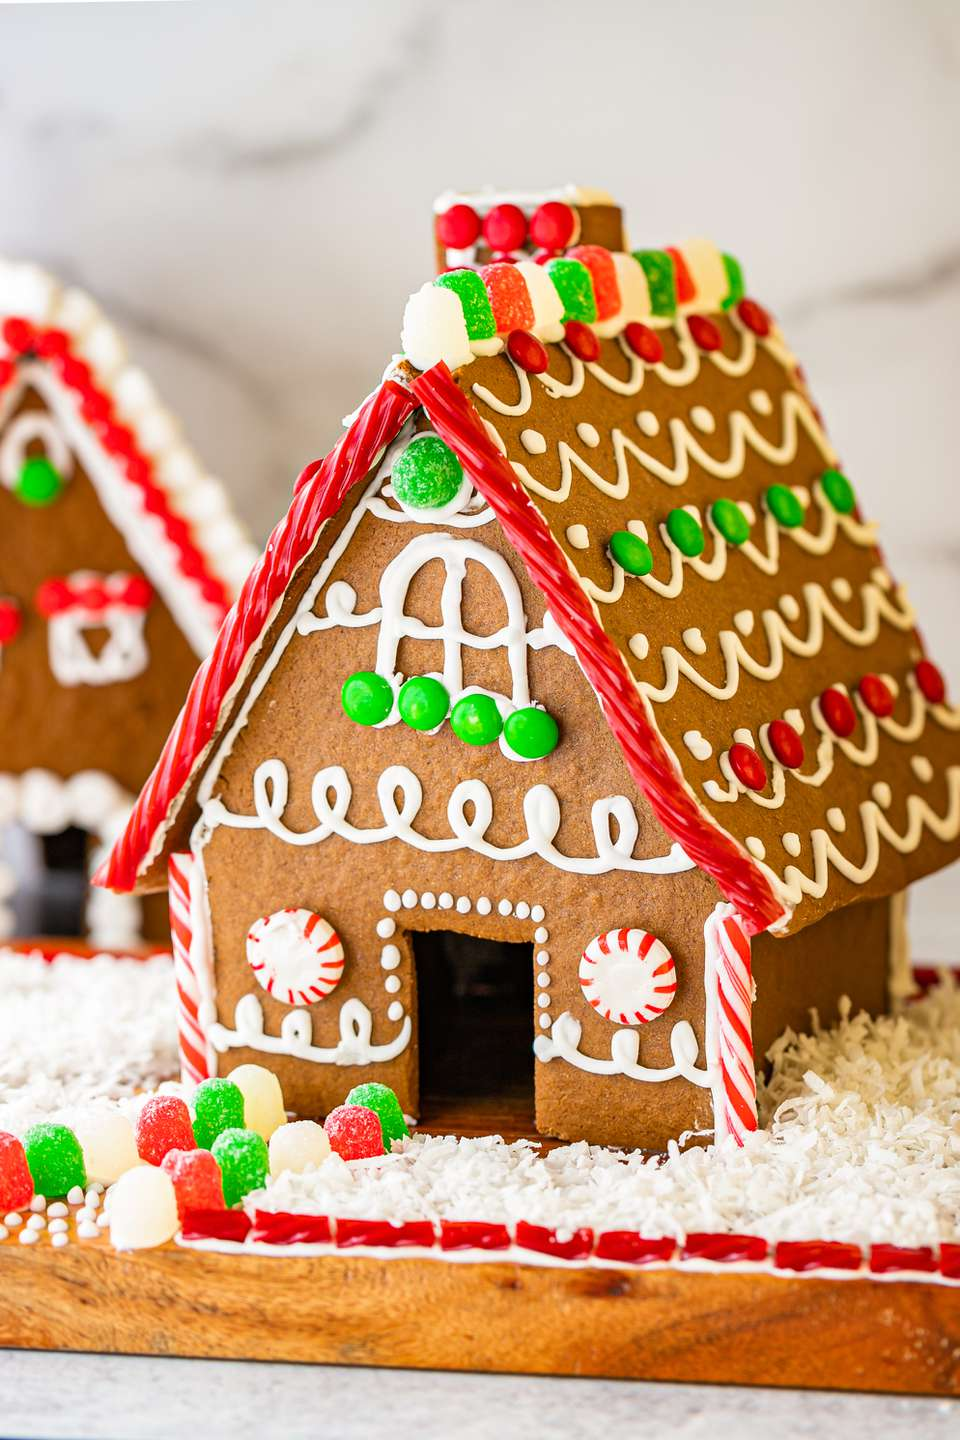 Side view of a gingerbread house.